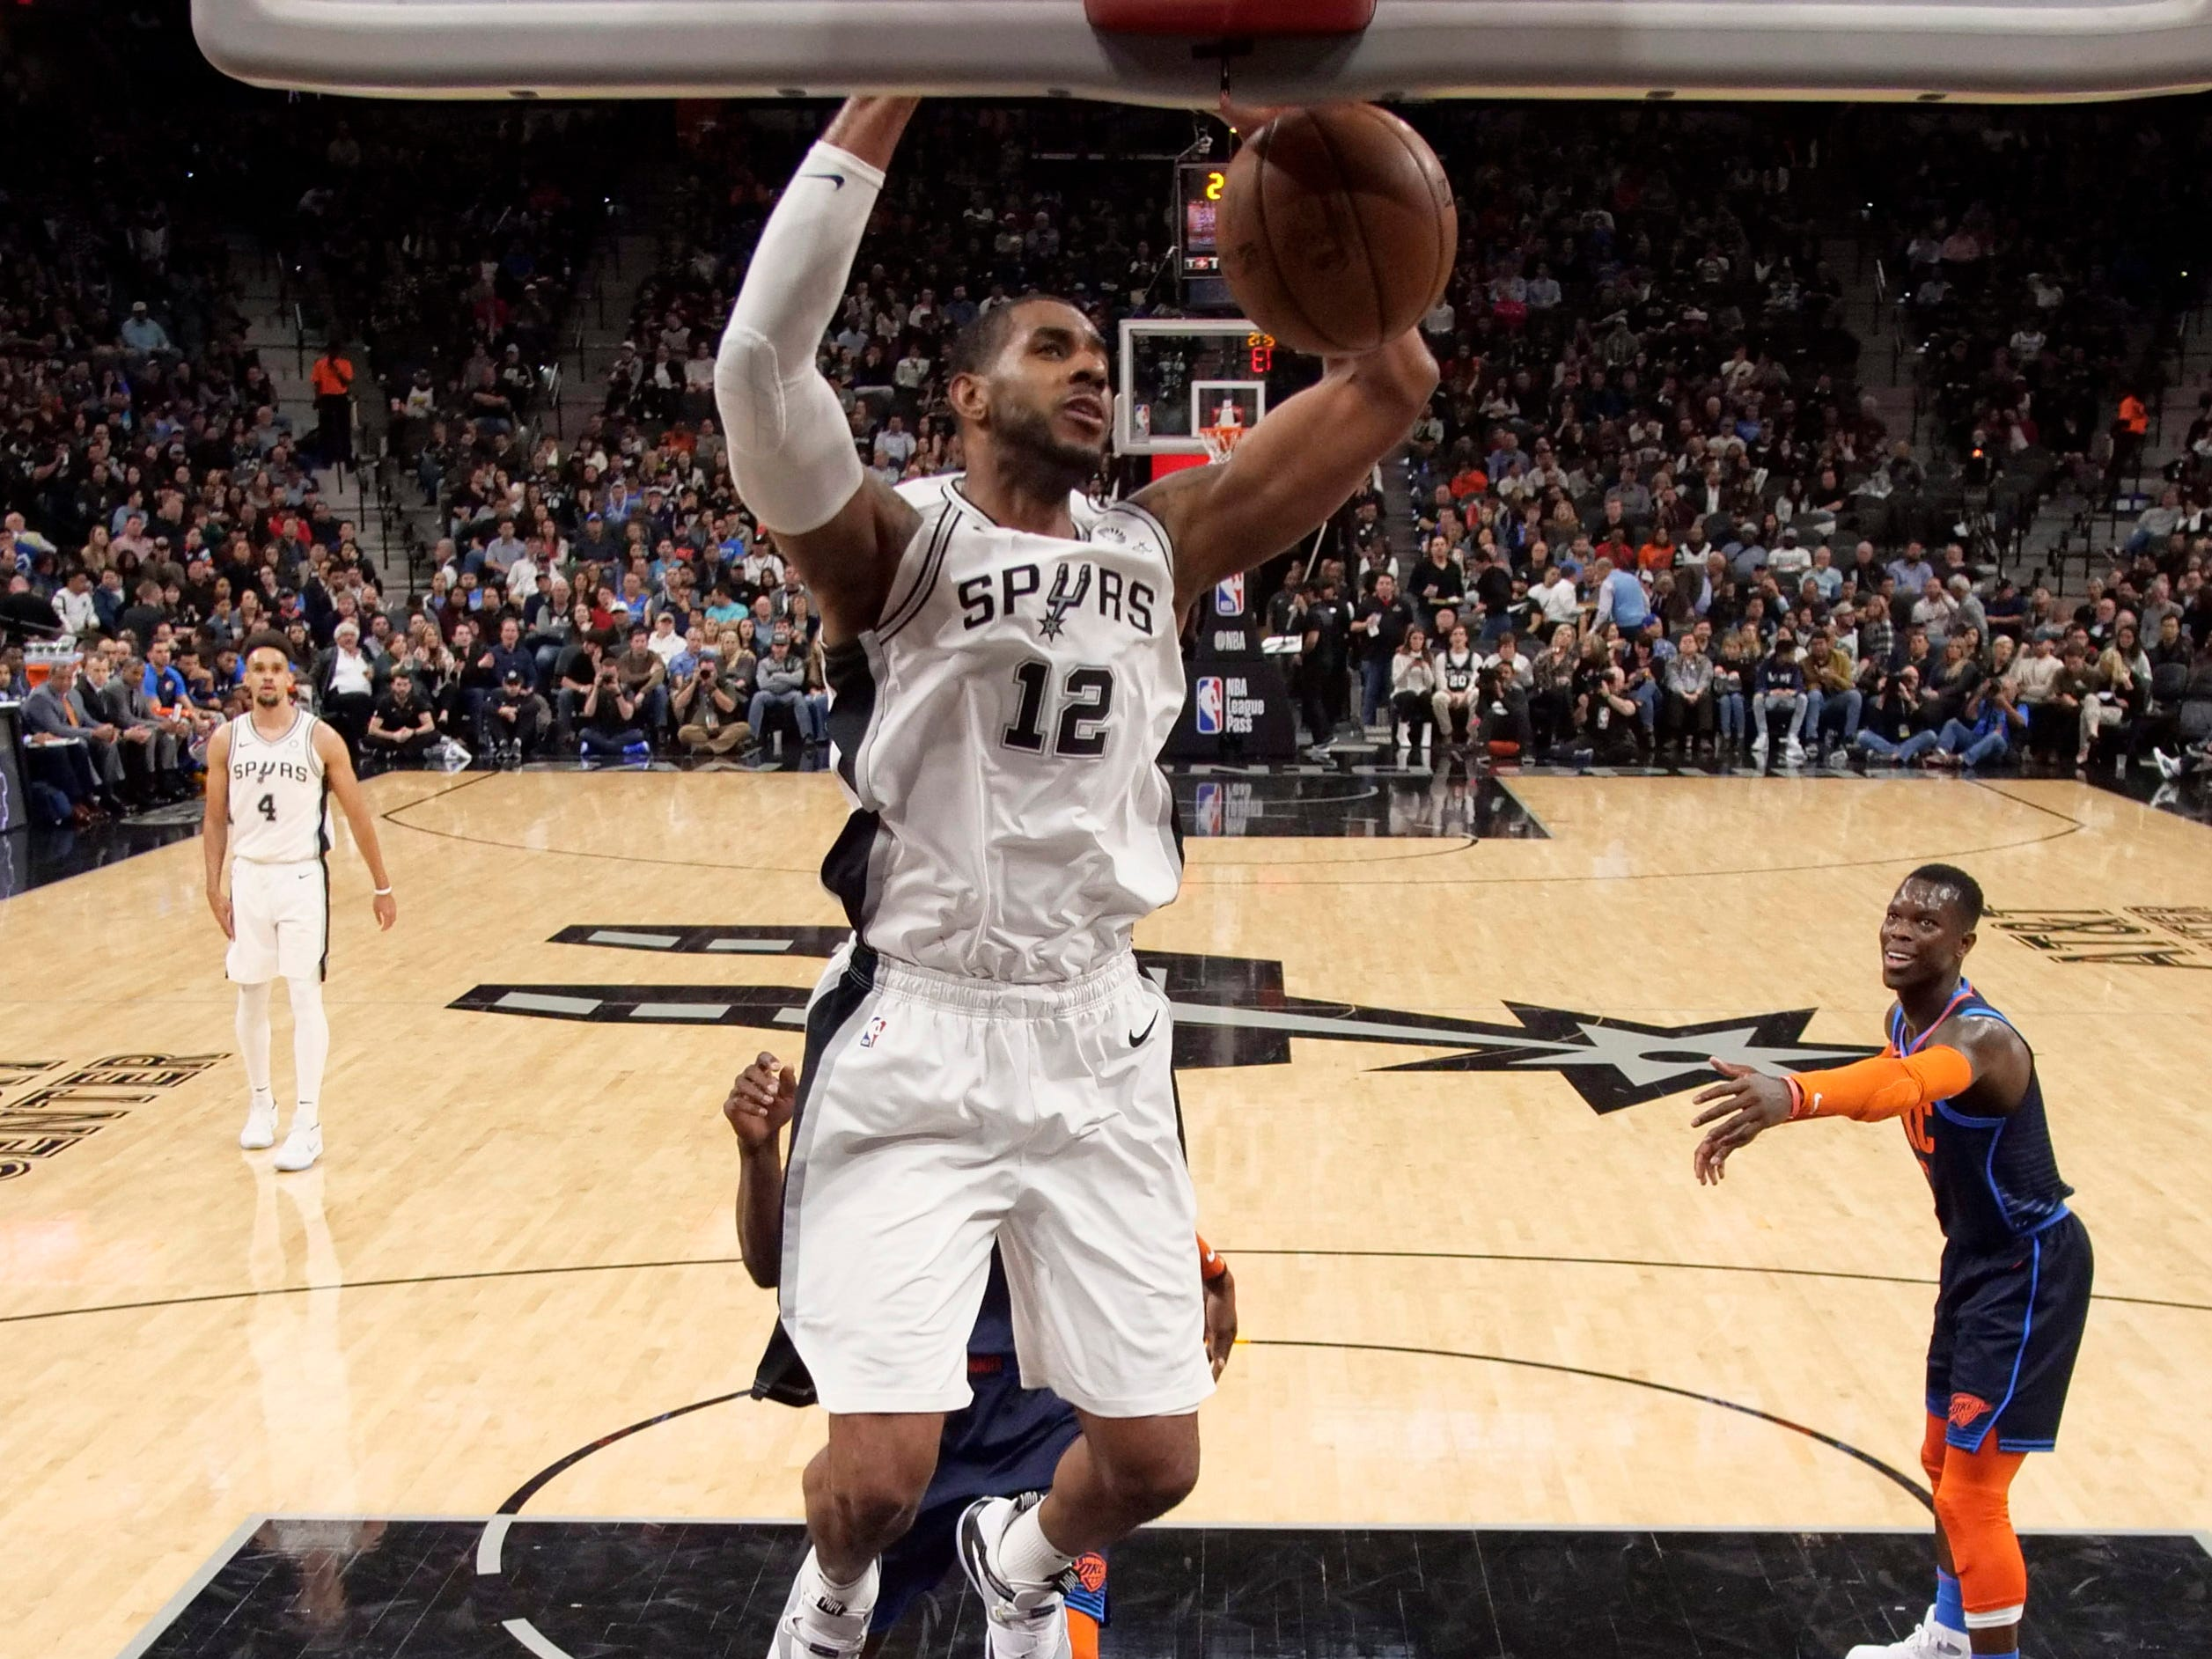 Jan. 10: LaMarcus Aldridge slams home two of his career-high 56 points in the Spurs' wild 154-147 double-overtime win against the Thunder.